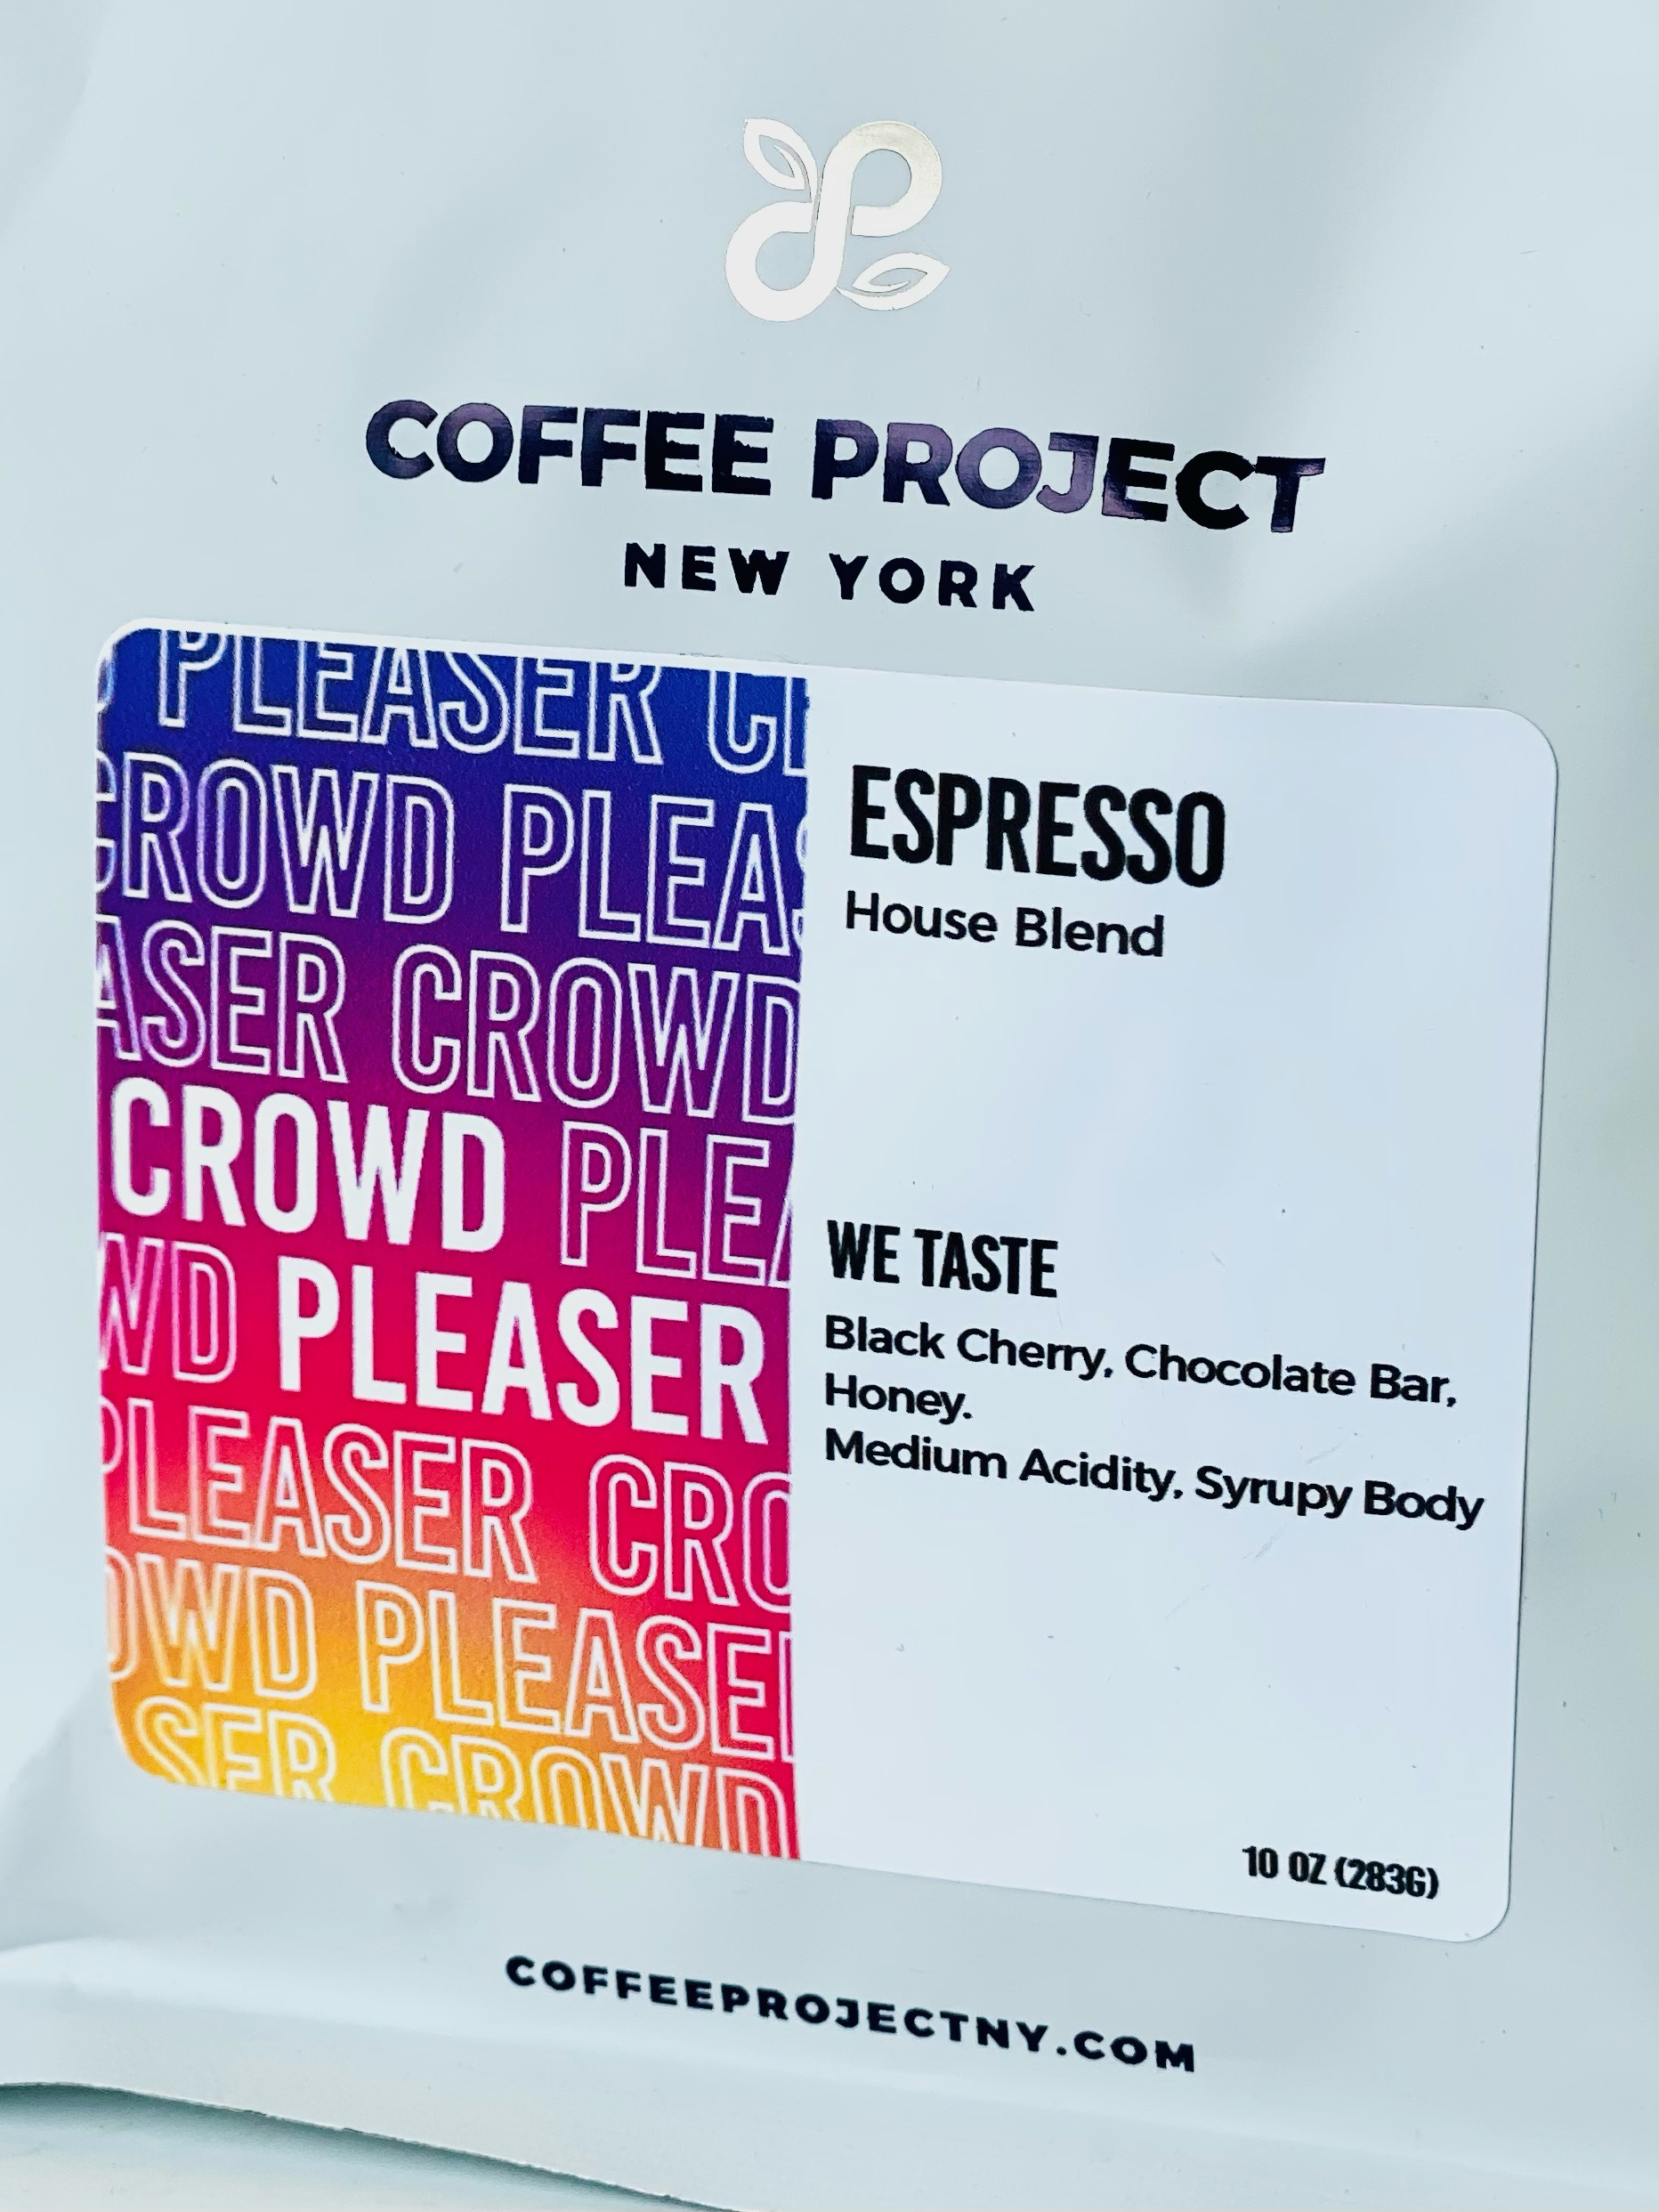 Calling All Coffee Lovers